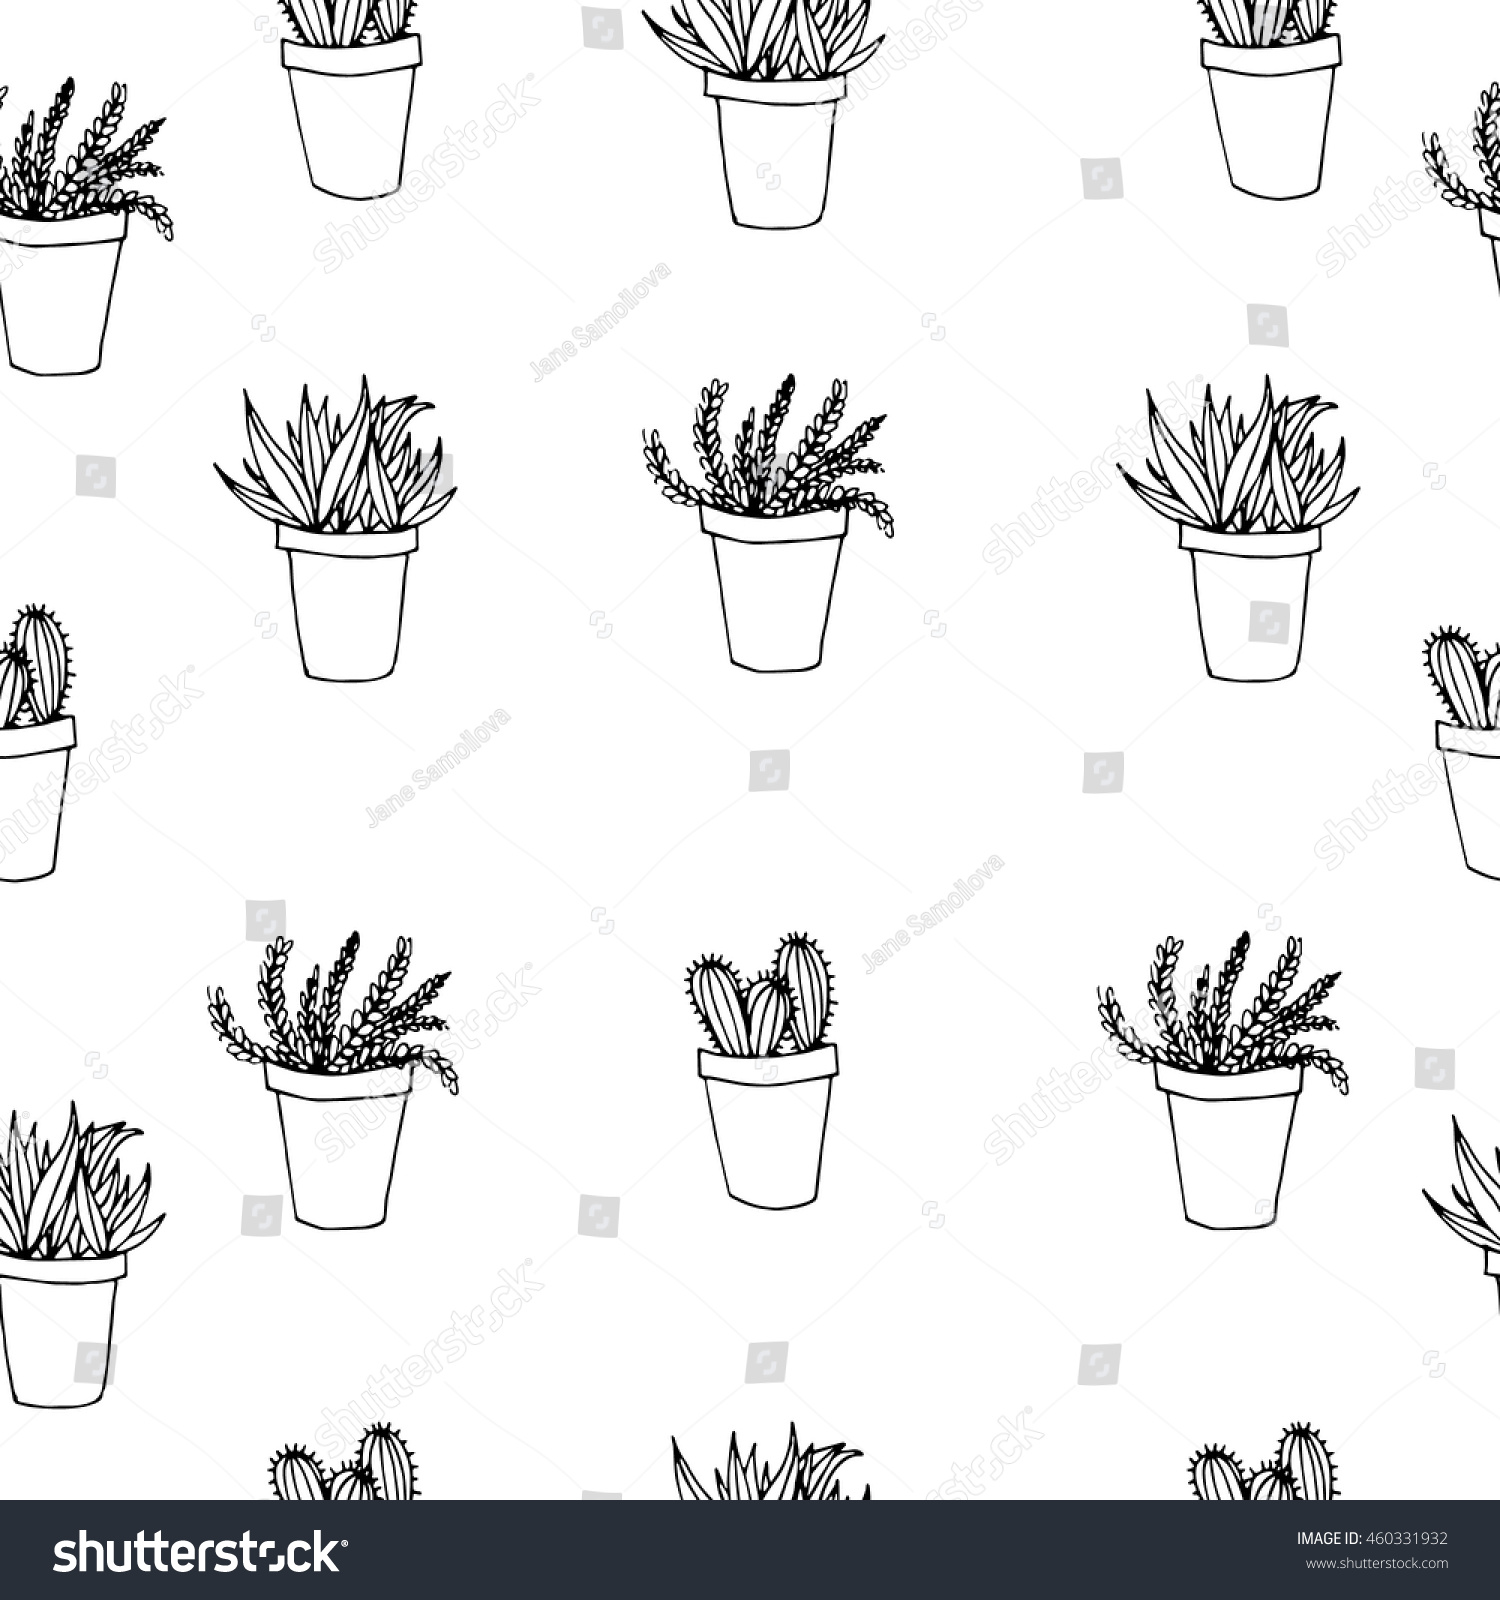 Black and white flower pots - Seamless Background Vector Pattern With Isolated Black And White Flower Pots For Your Design